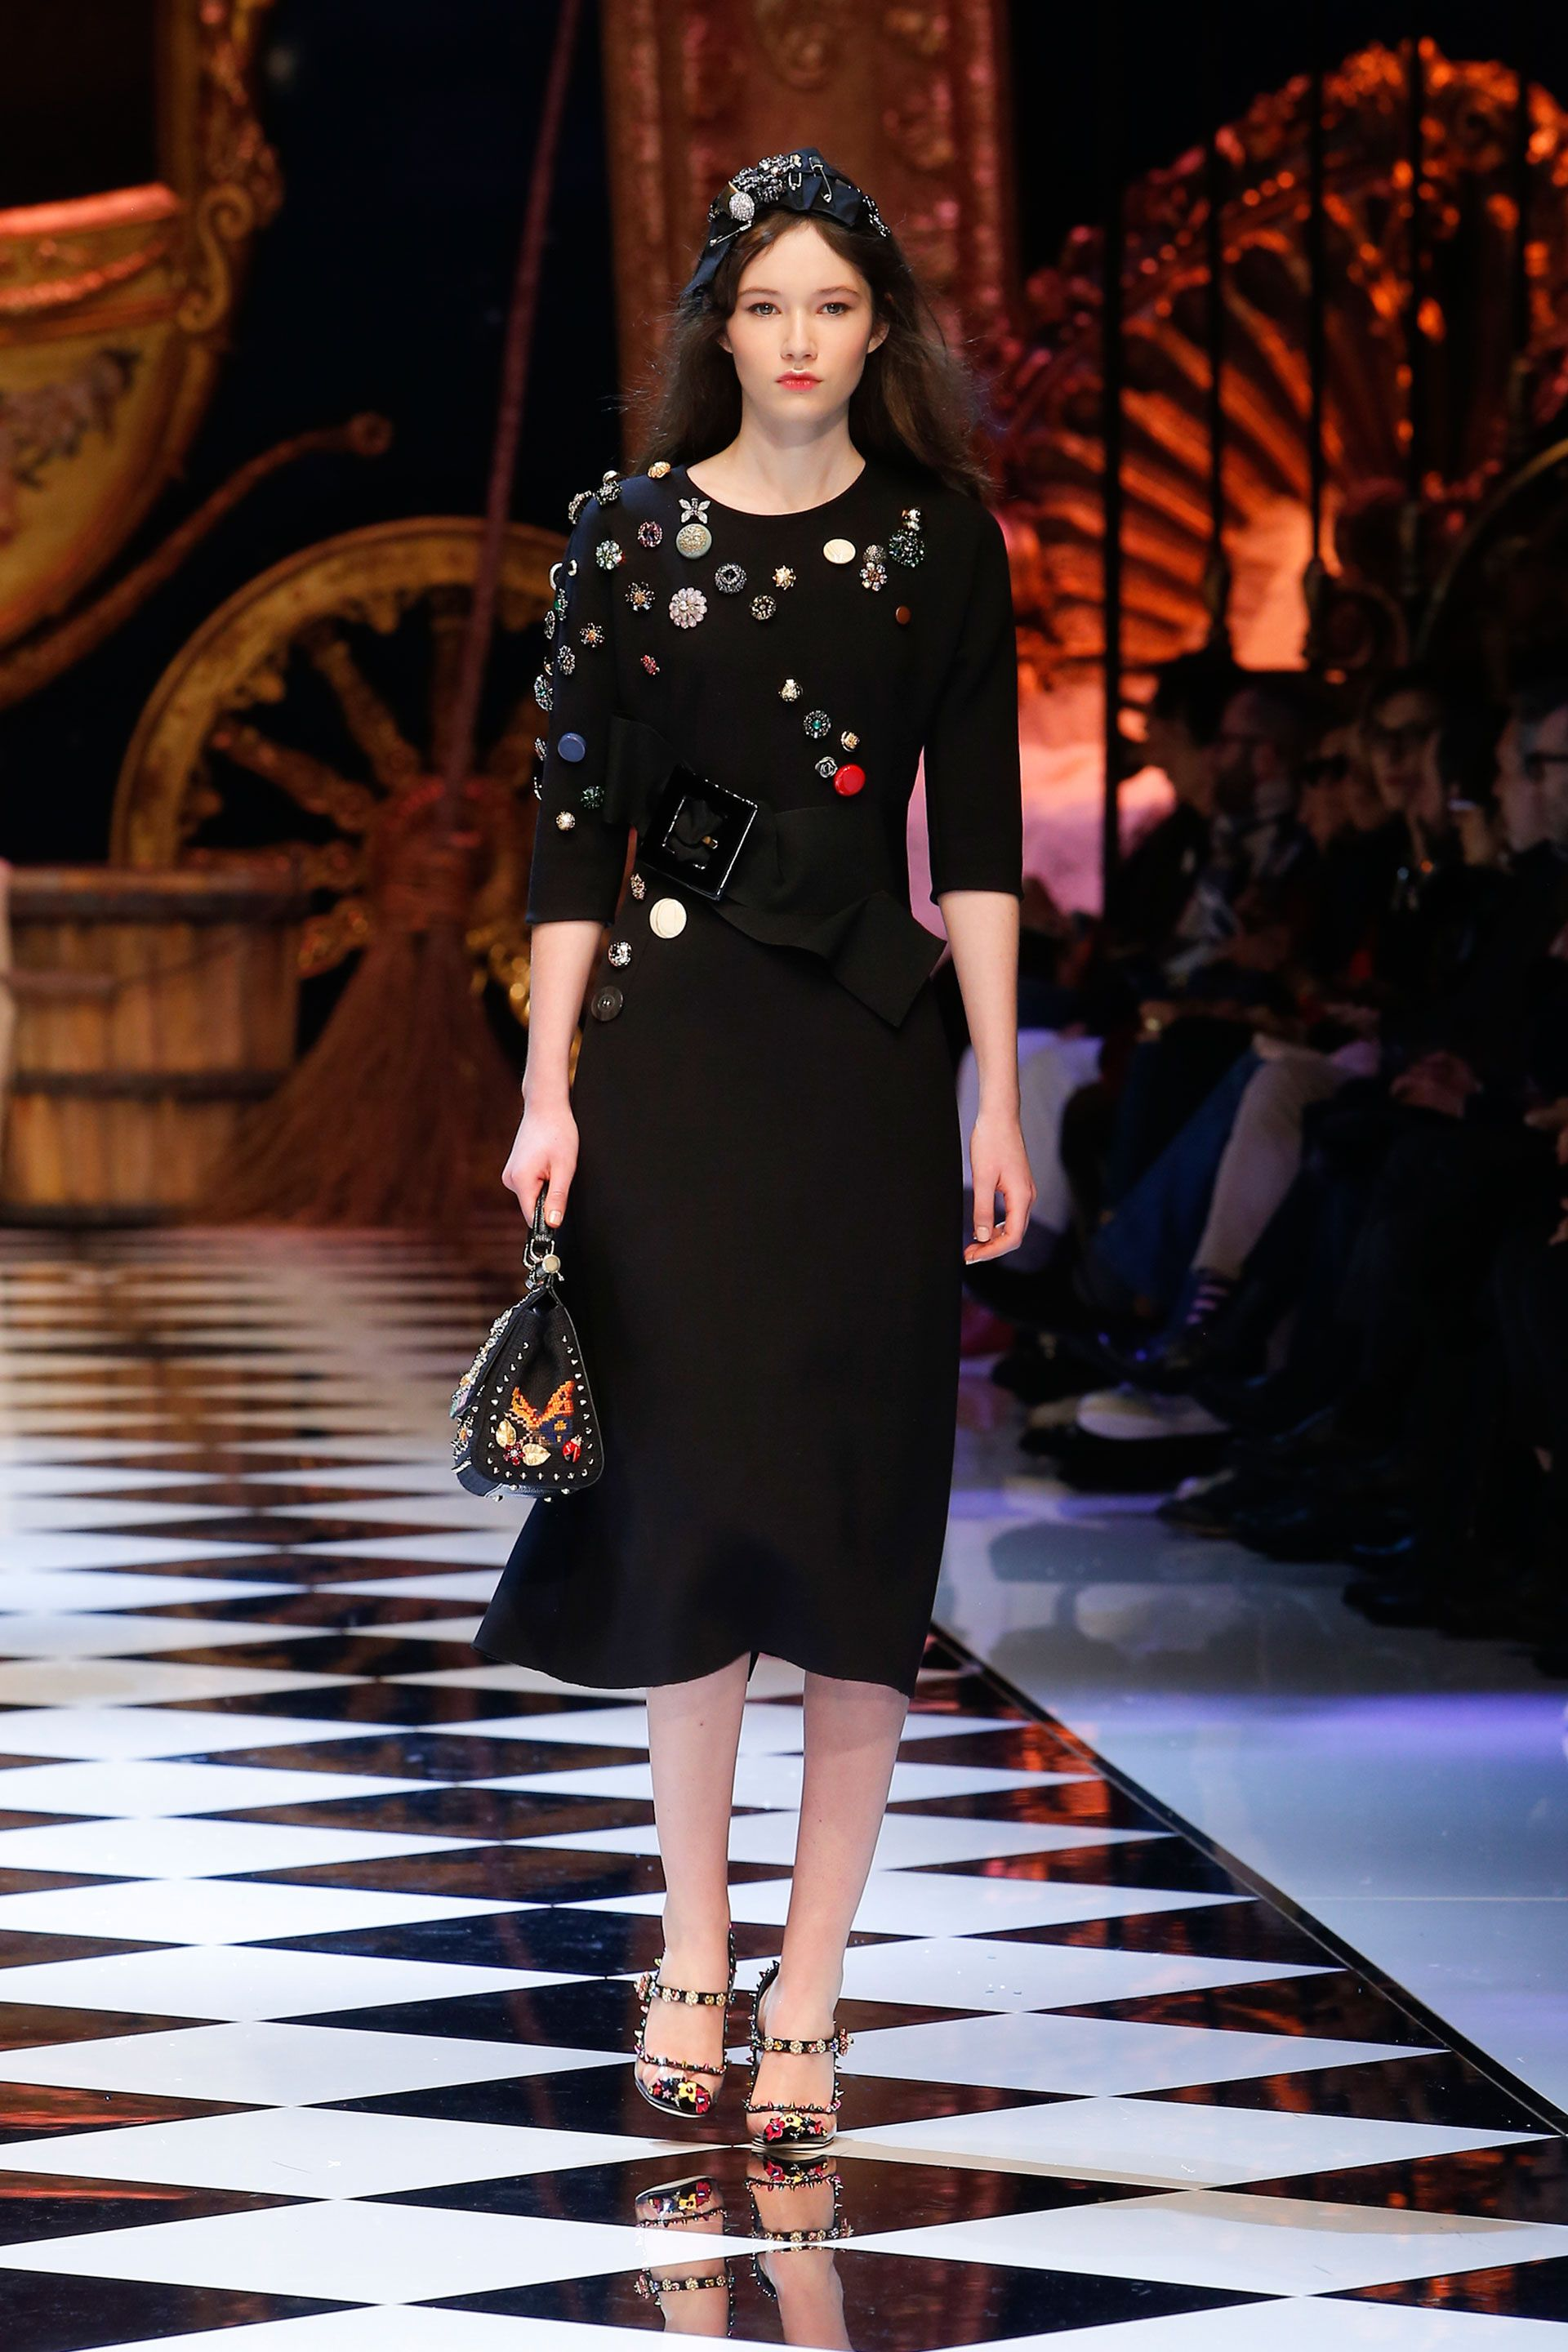 Discussion on this topic: DGFabulousFantasy: Dolce Gabbana Fall 2019 Tells Its , dgfabulousfantasy-dolce-gabbana-fall-2019-tells-its/